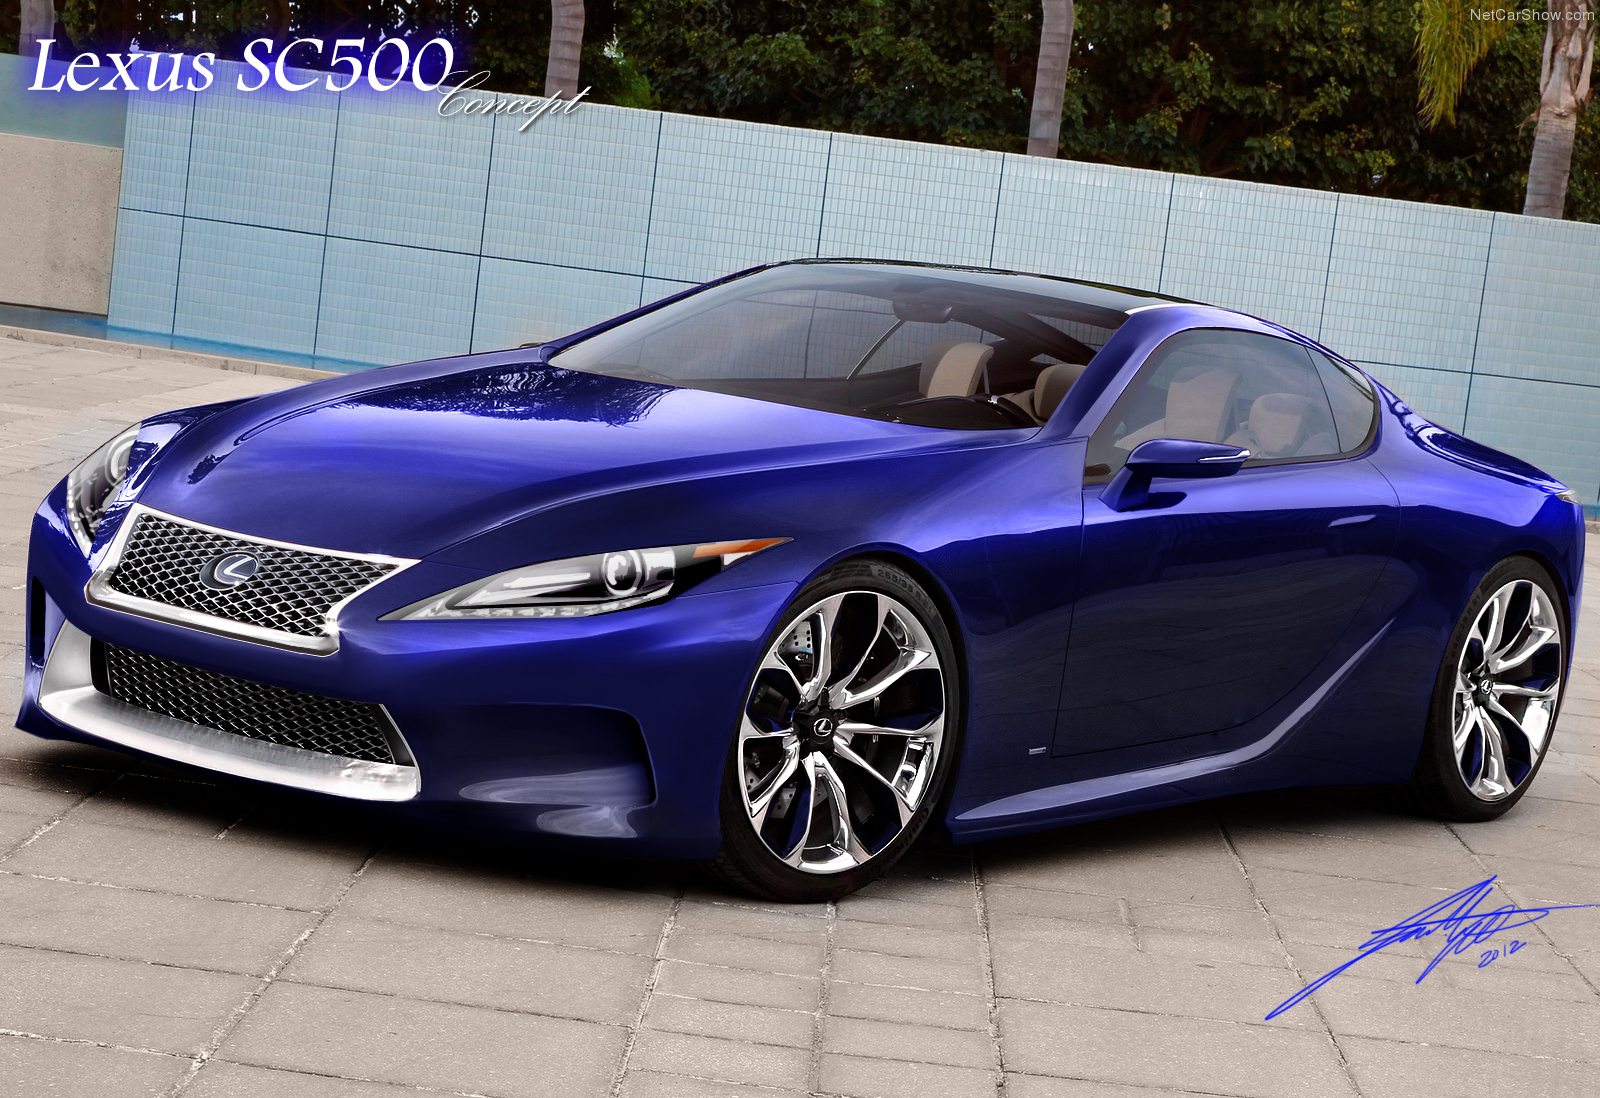 Lexus IS 500 2012 photo - 6